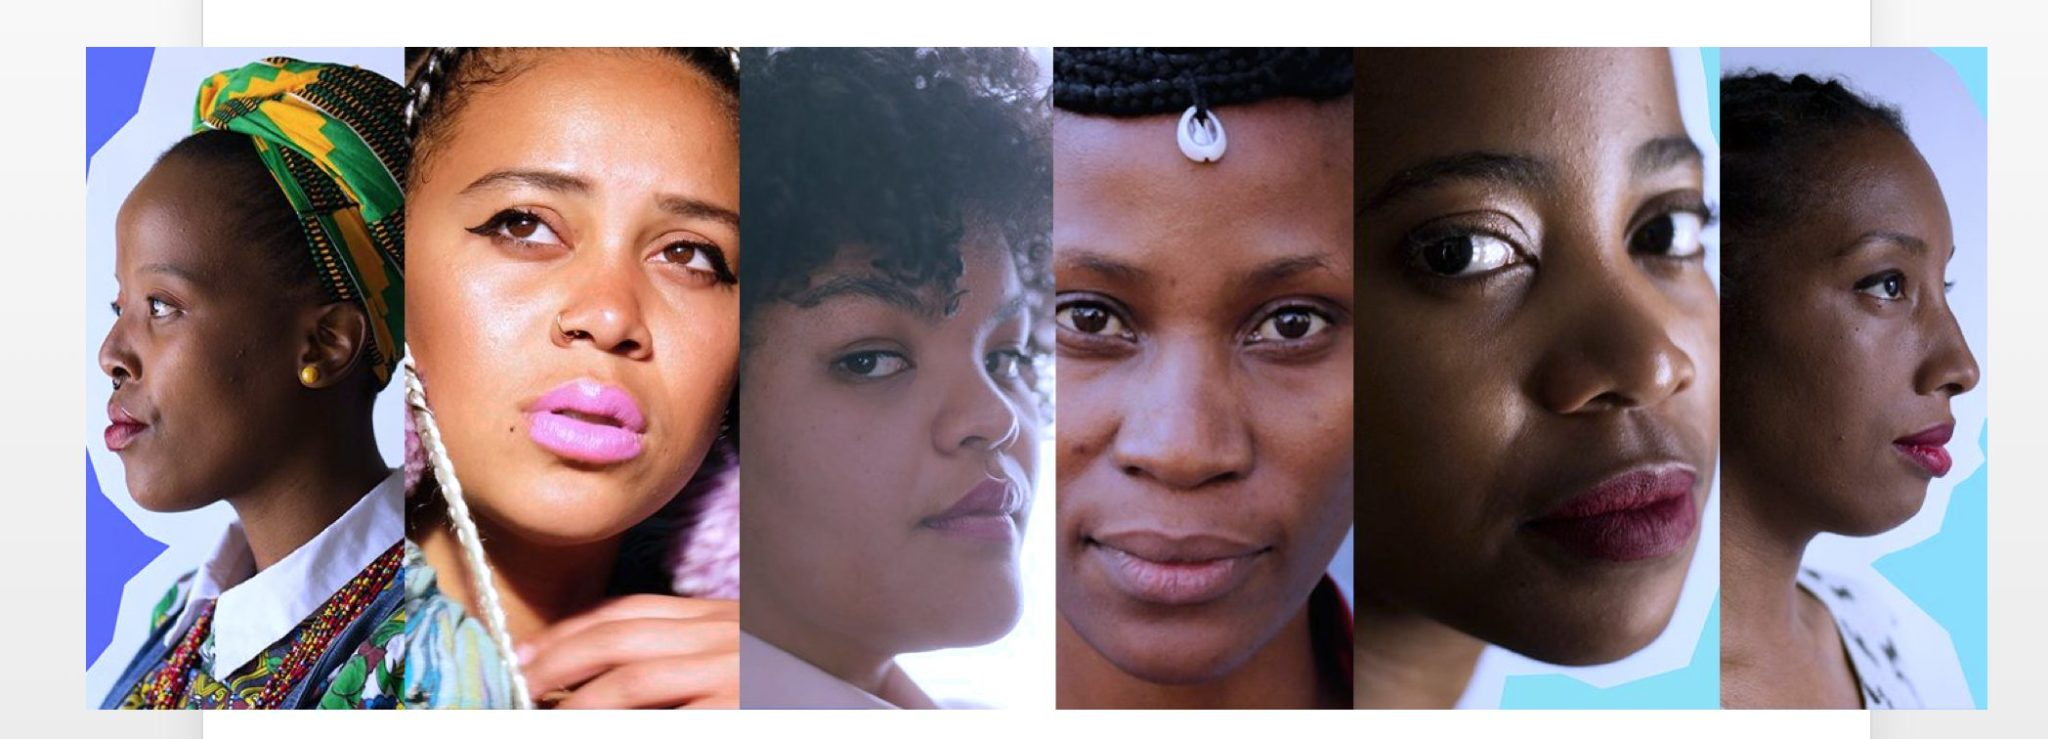 PLLR: Meet the 10 phenomenal womxn that make up 10and5's ...